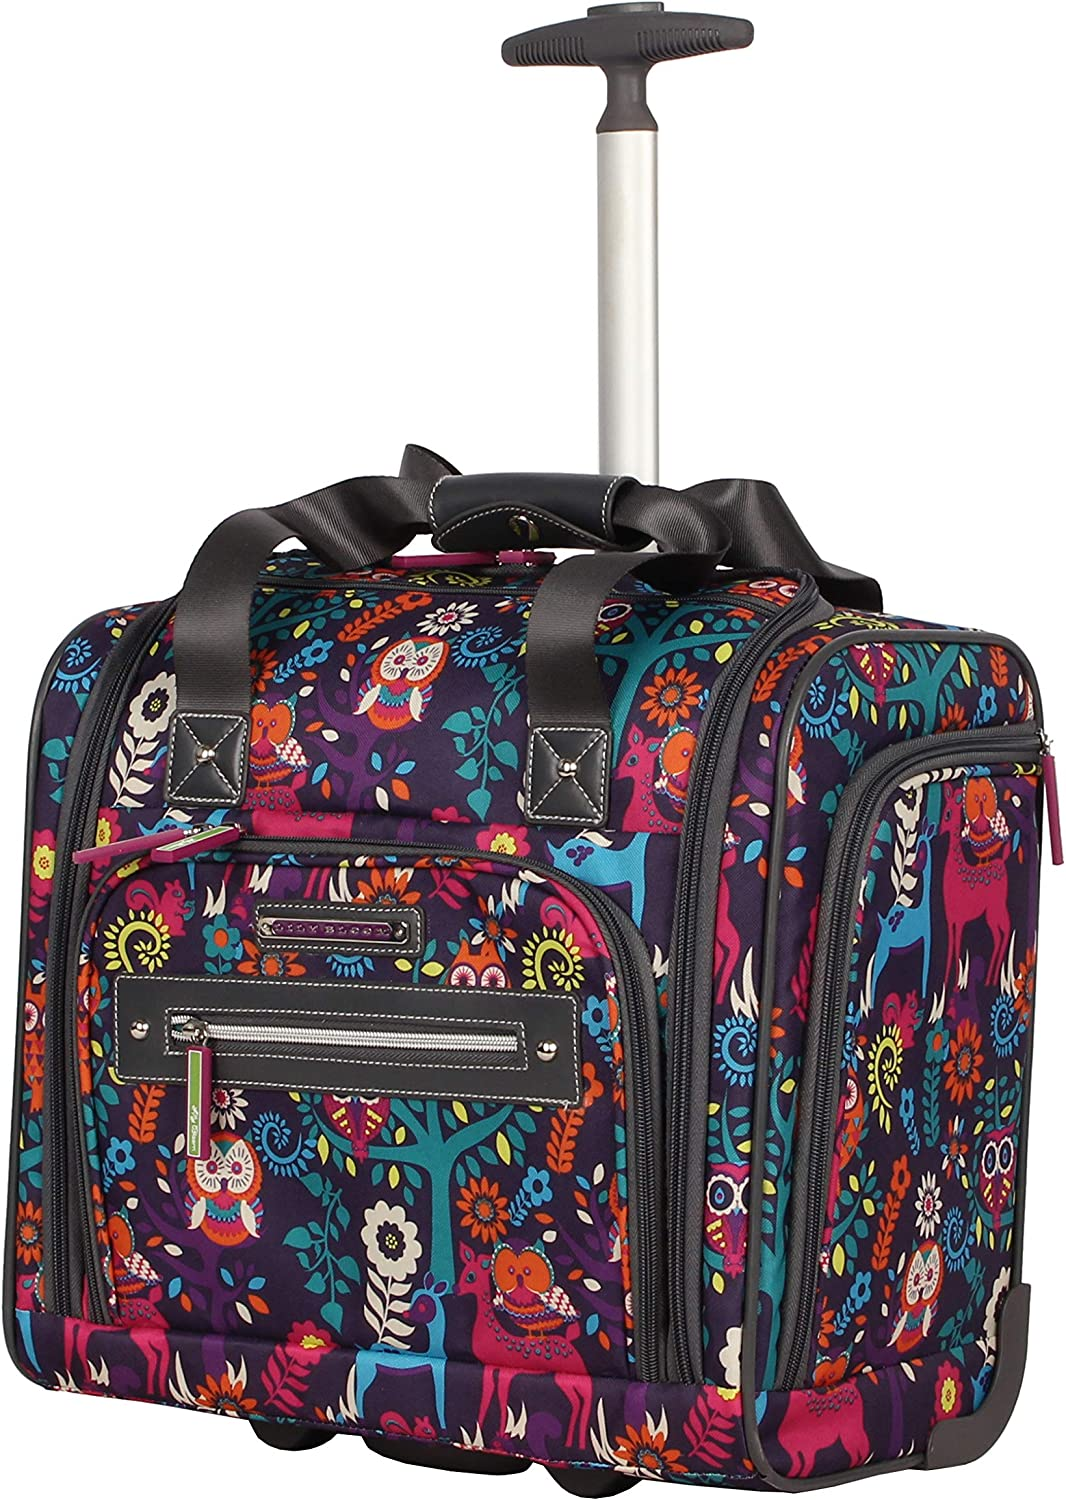 Lily Bloom Designer 15 Inch Carry On - Weekender Overnight Business Travel Luggage - Lightweight 2- Spinner Wheels Suitcase - Under Seat Rolling Bag for Women (Wildwoods)